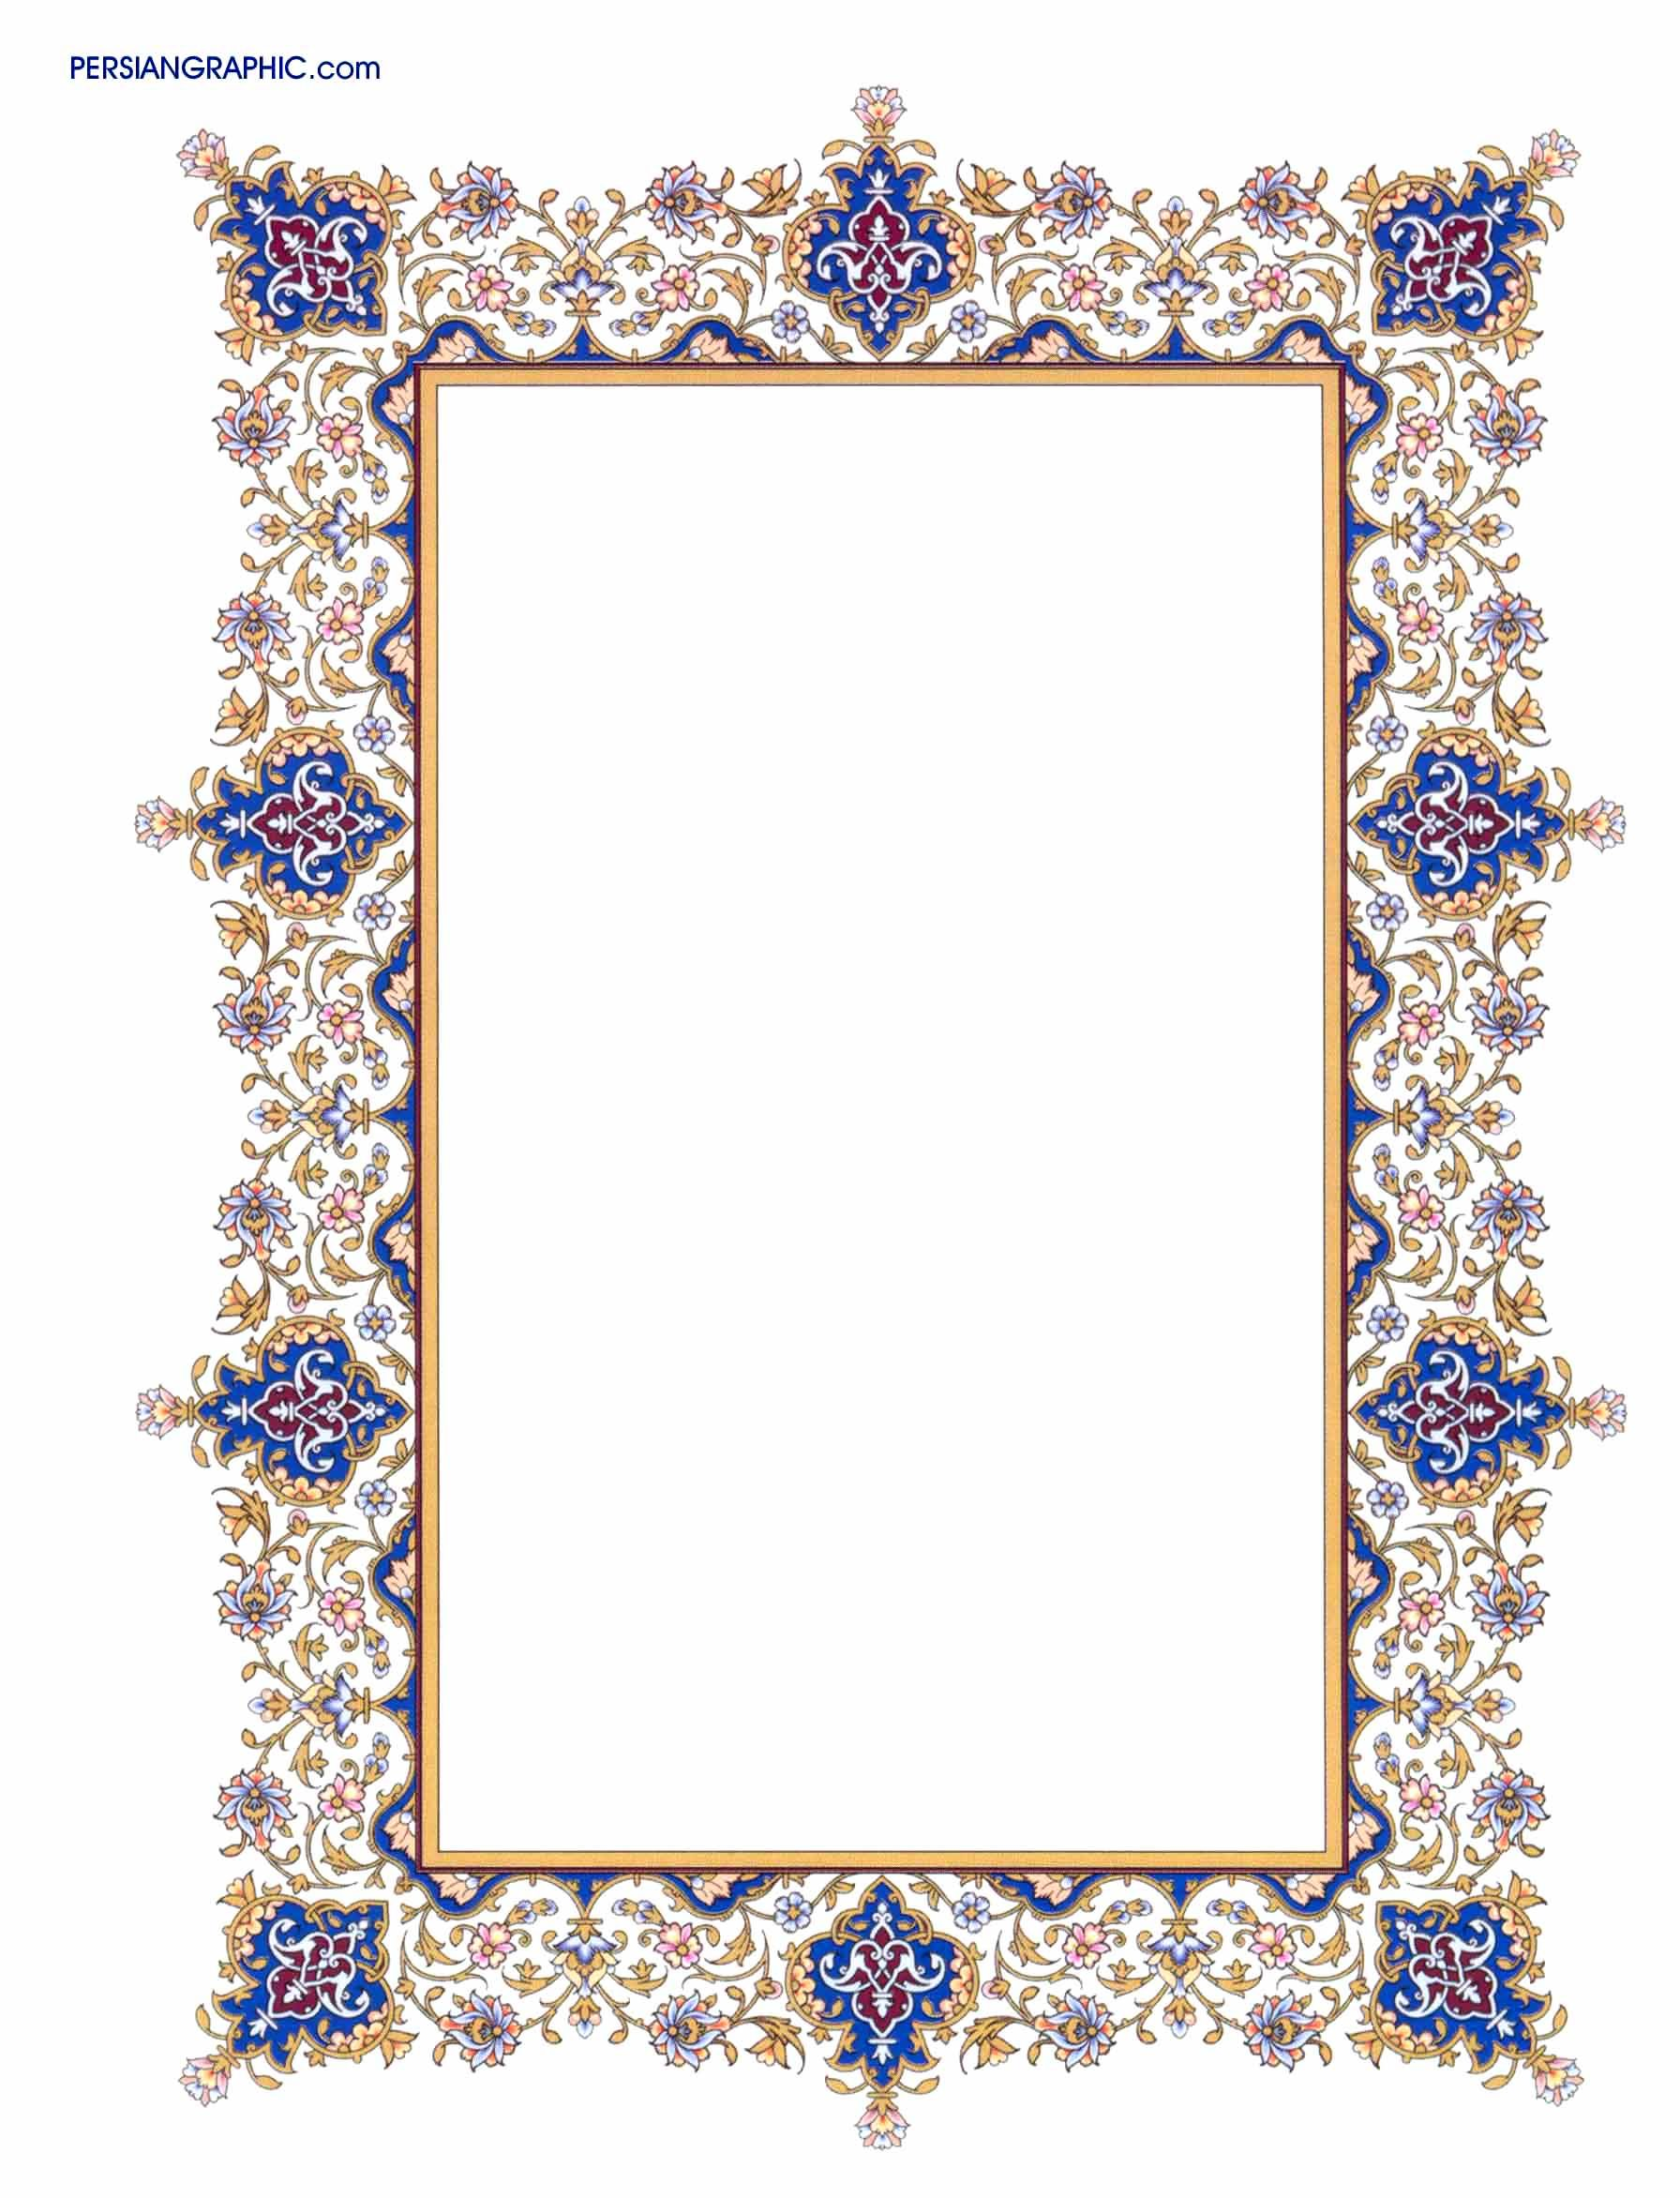 Graphicir Full Size Image Patterns Motifs Ornaments